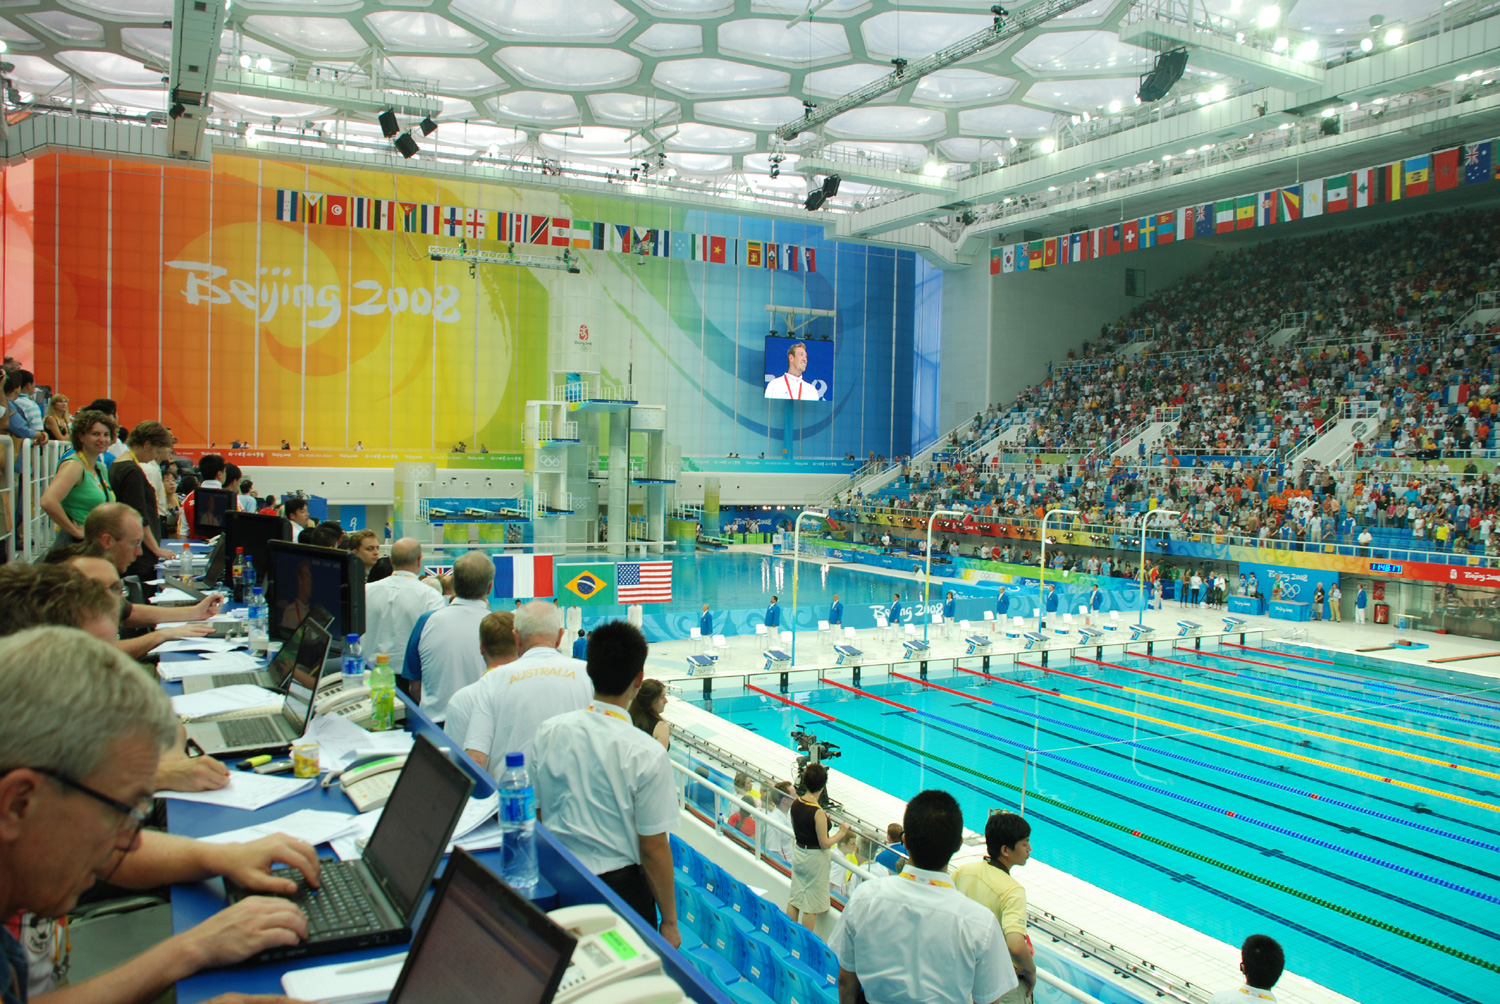 Amazing pictures of beijing 39 s olympic cube turned indoor water park menaverohblog for Beijing swimming pool olympics